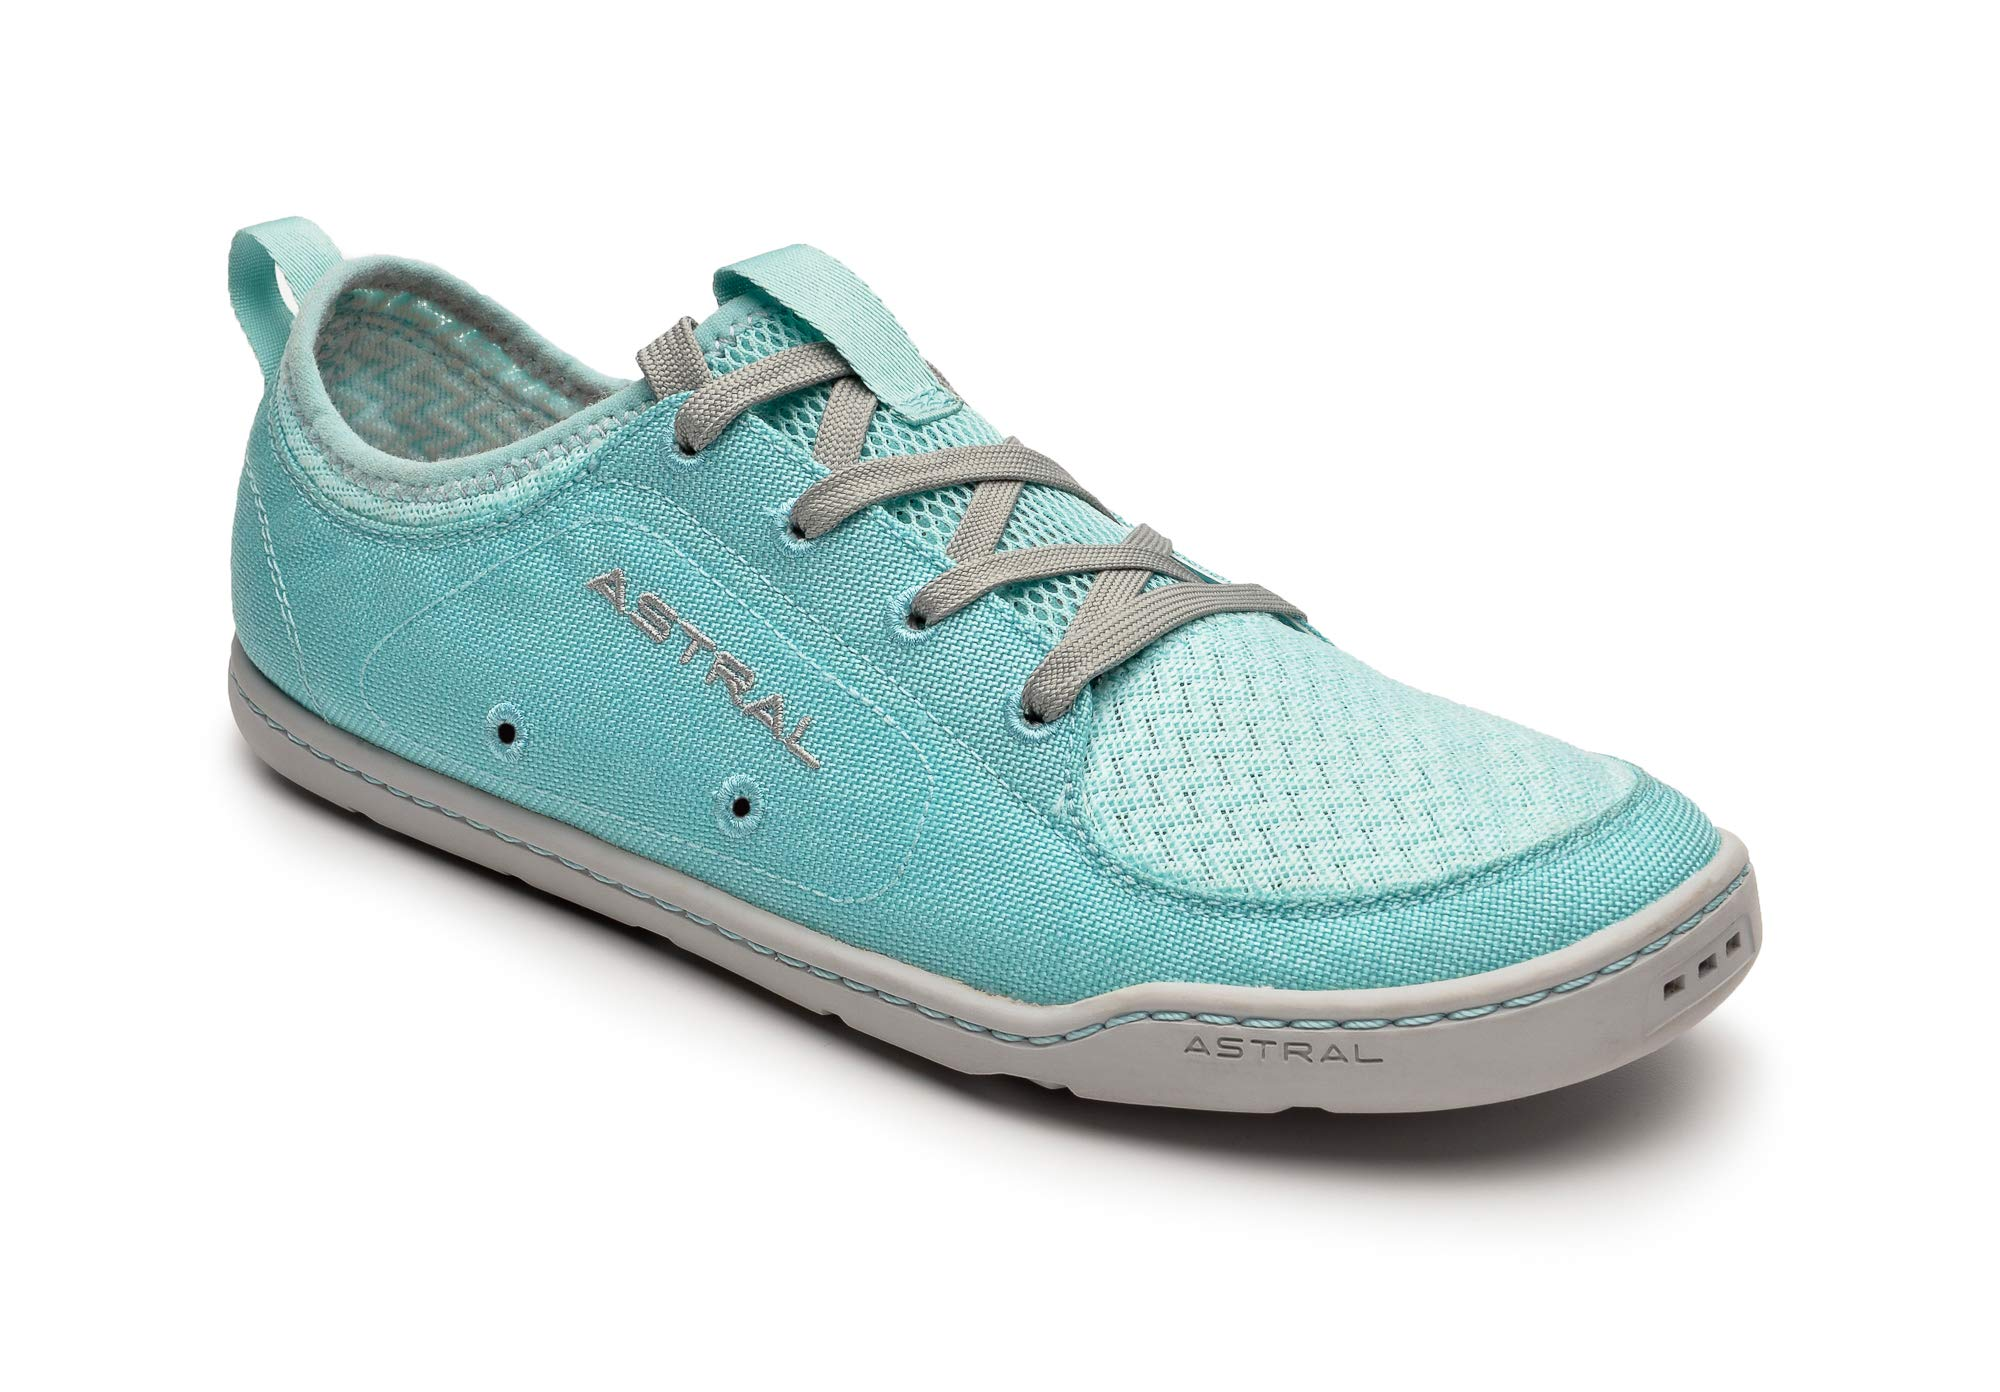 Astral Women's Loyak Everyday Outdoor Minimalist Sneakers, Lightweight and Flexible, Made for Water, Casual, Travel, and Boat, Turquoise Gray, 8 M US by Astral